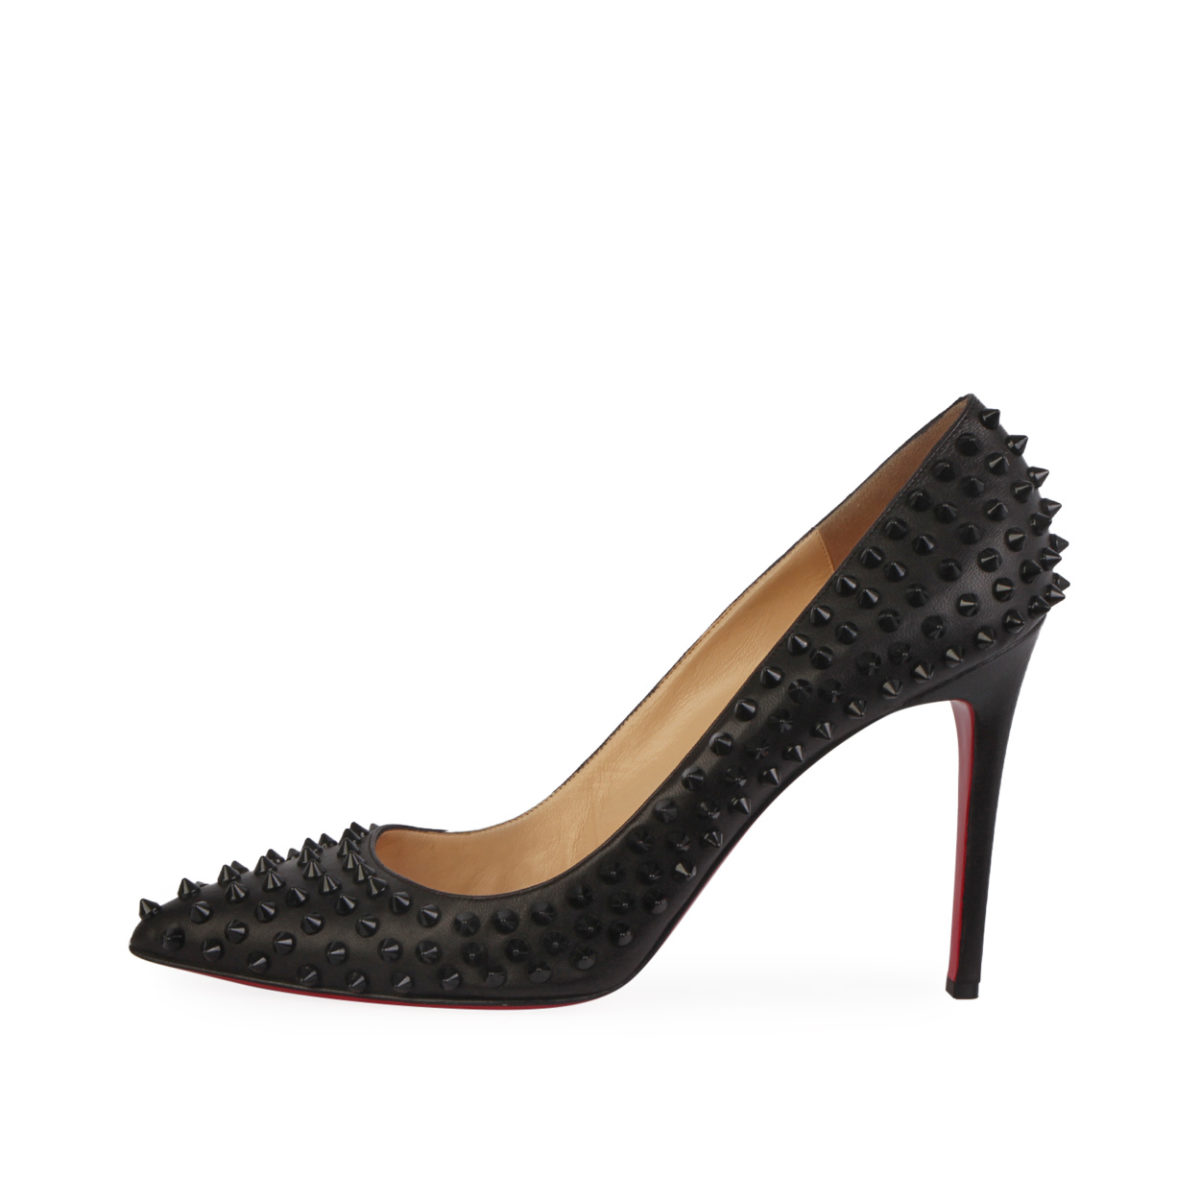 a11363c59461 CHRISTIAN LOUBOUTIN Leather Pigalle Spikes 100 Pumps Black S  41.5 ...